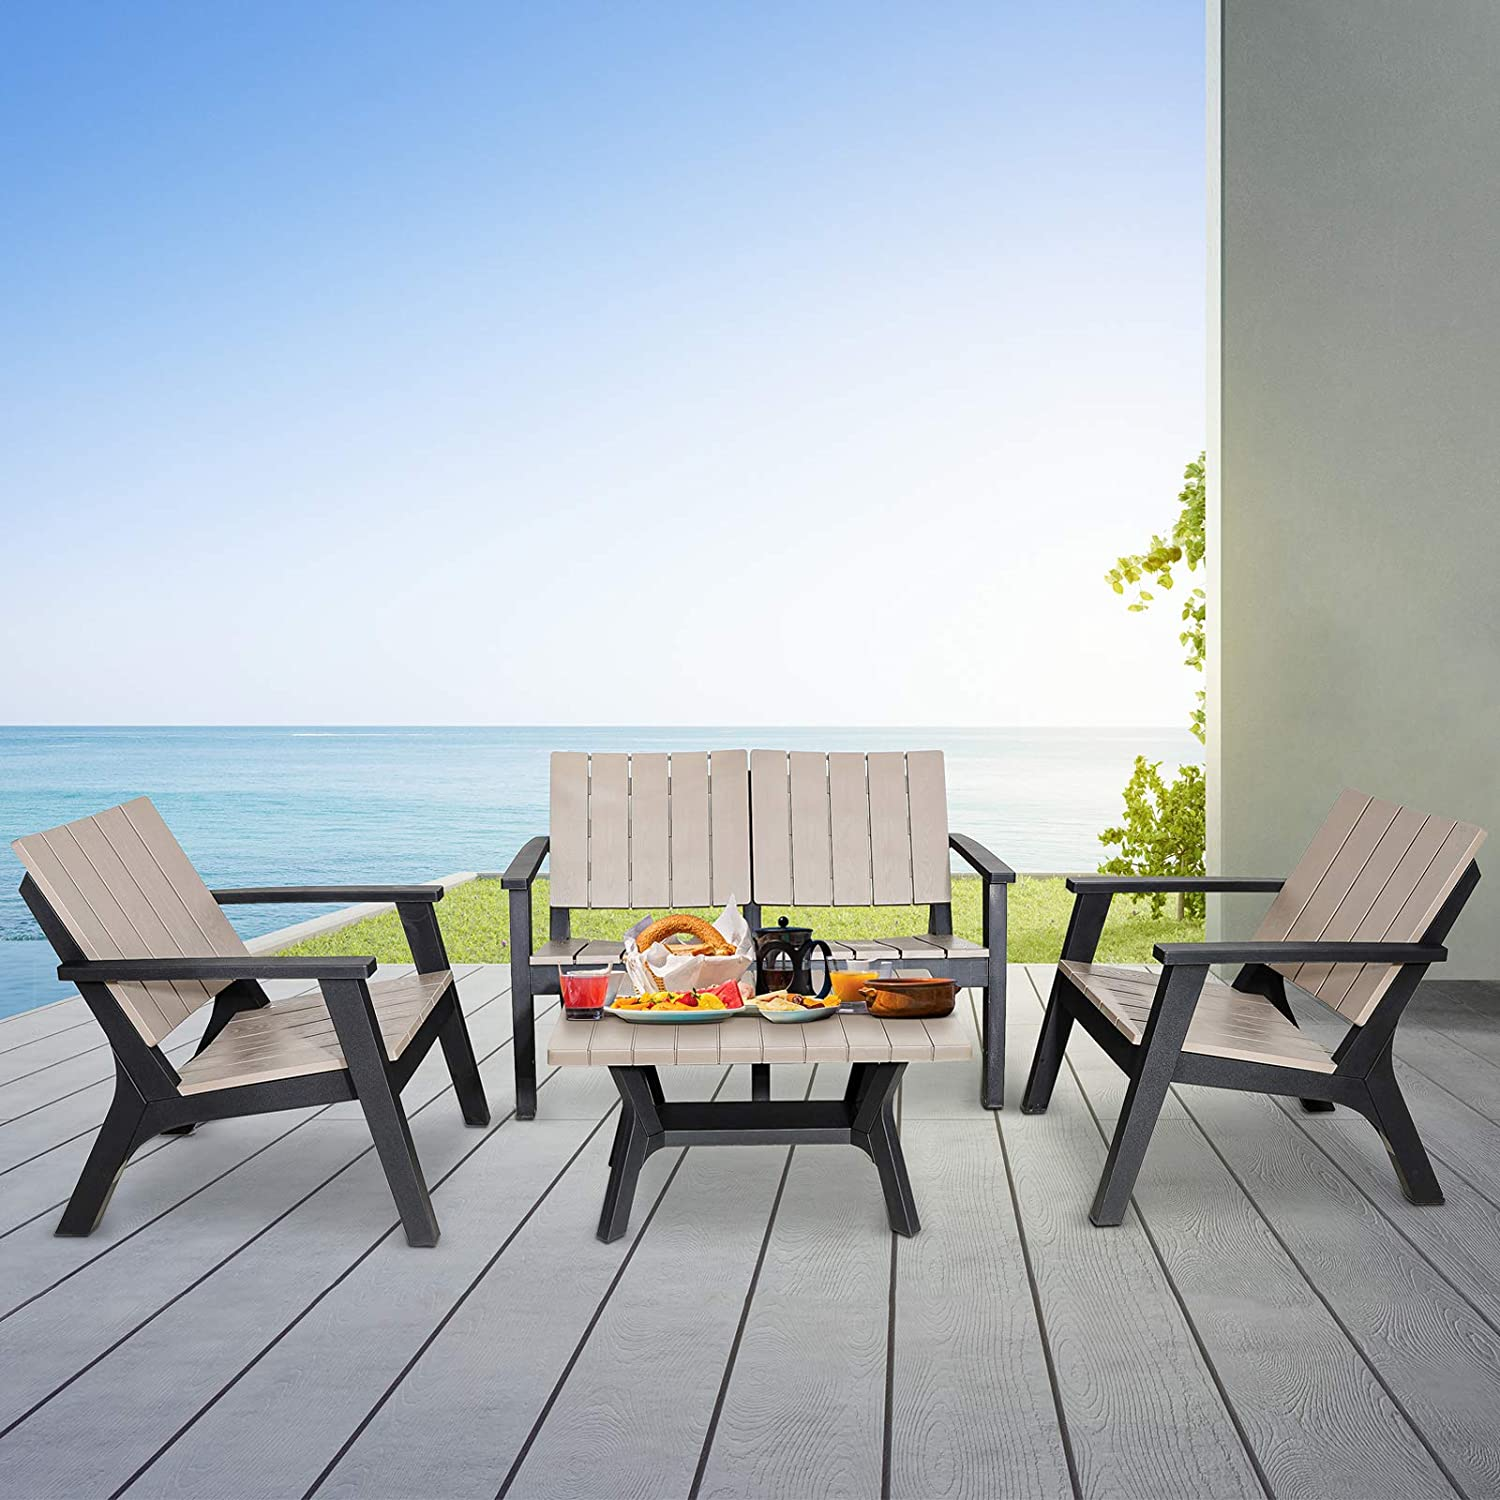 Ultra-Cheap All stores are sold Deals Cozy Castle 4 Pieces Patio Furniture a Sets Outdoor Resin Table